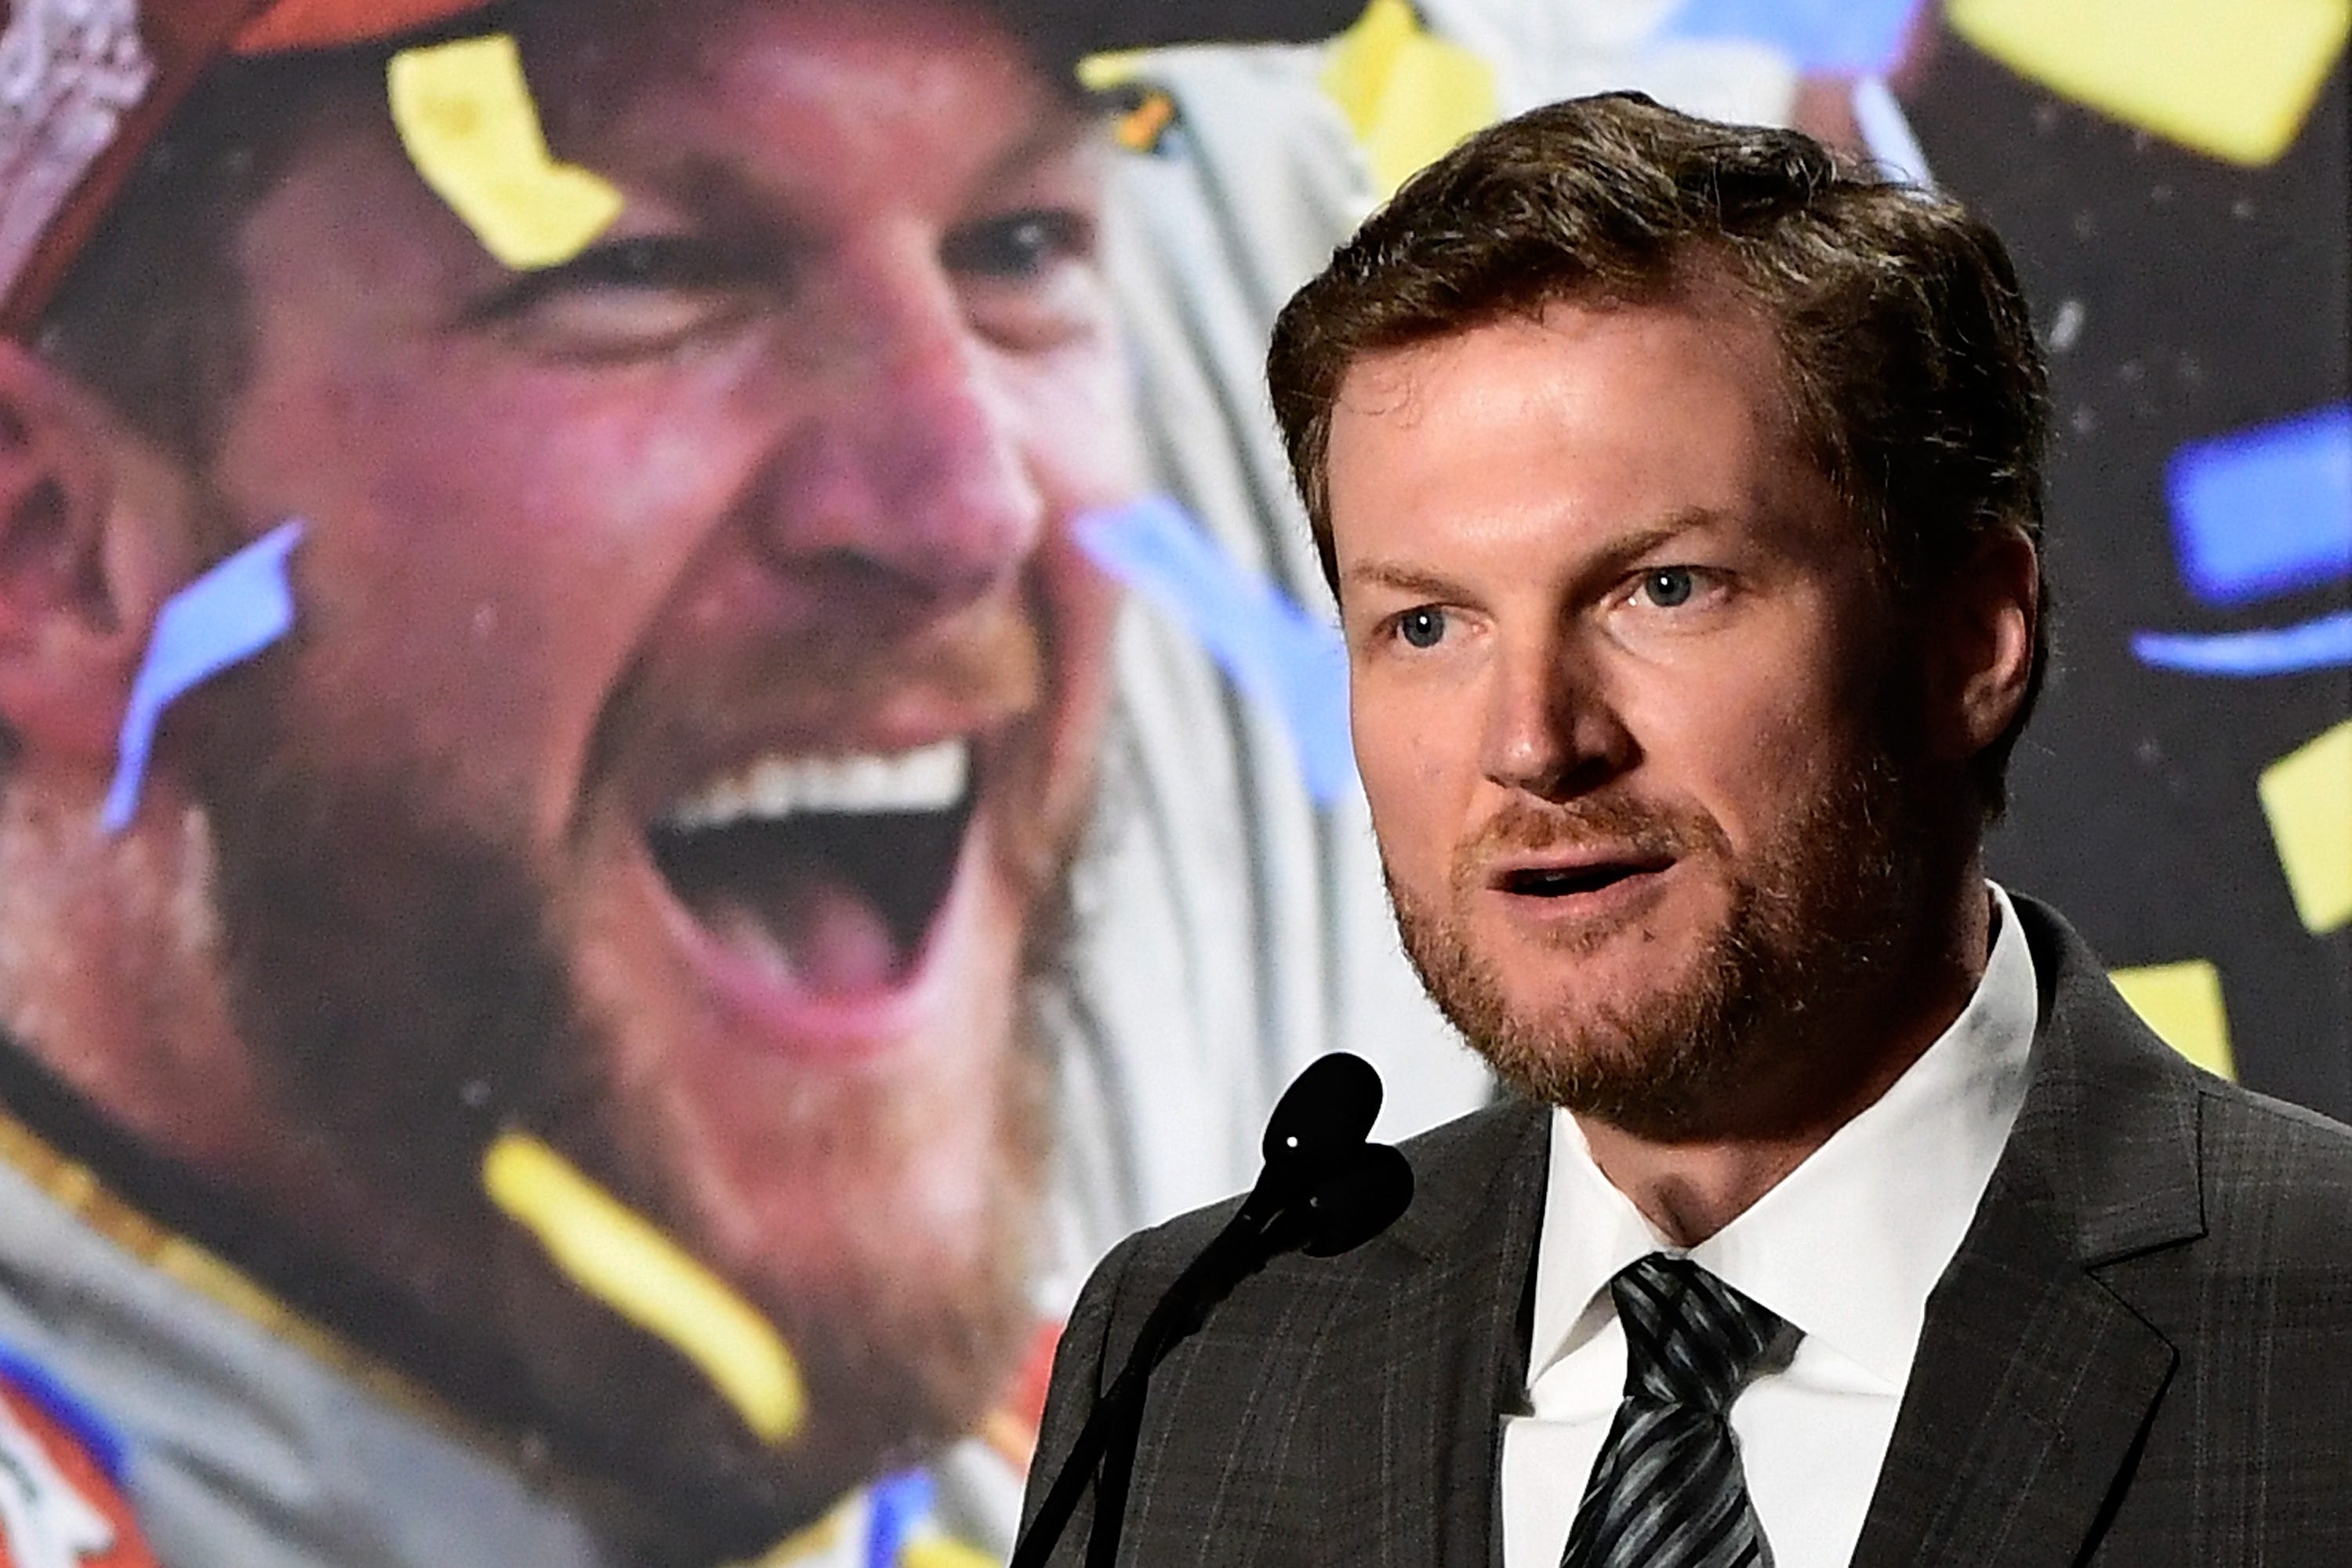 Dale Earnhardt Jr. on retirement: I wanted 'to go out on my own terms'